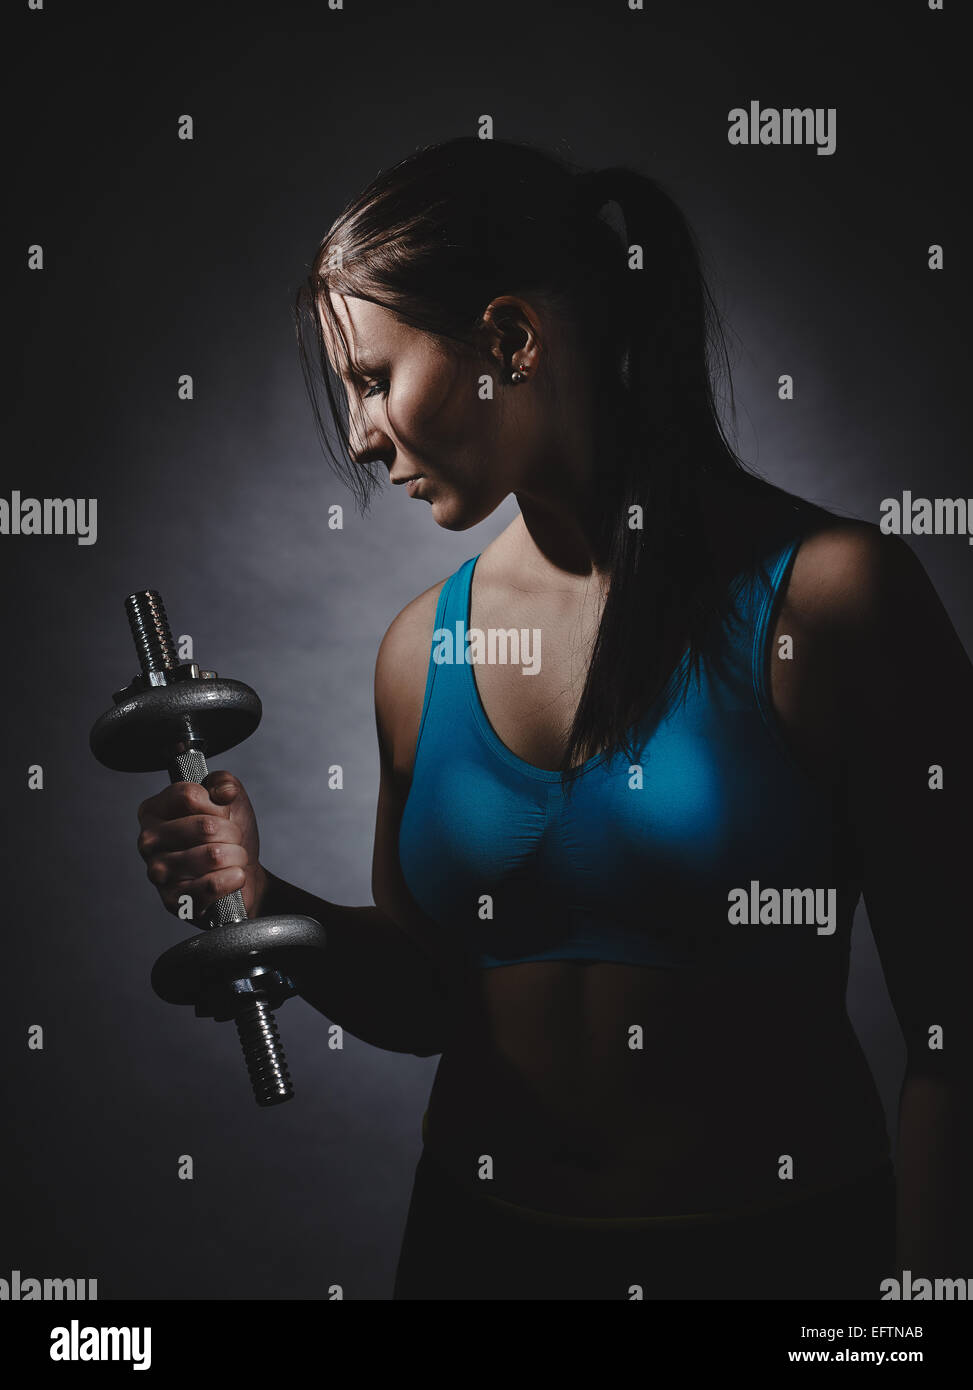 Weightlifting, young woman wearing sportswear and she exercise, studio shot, dark background - Stock Image